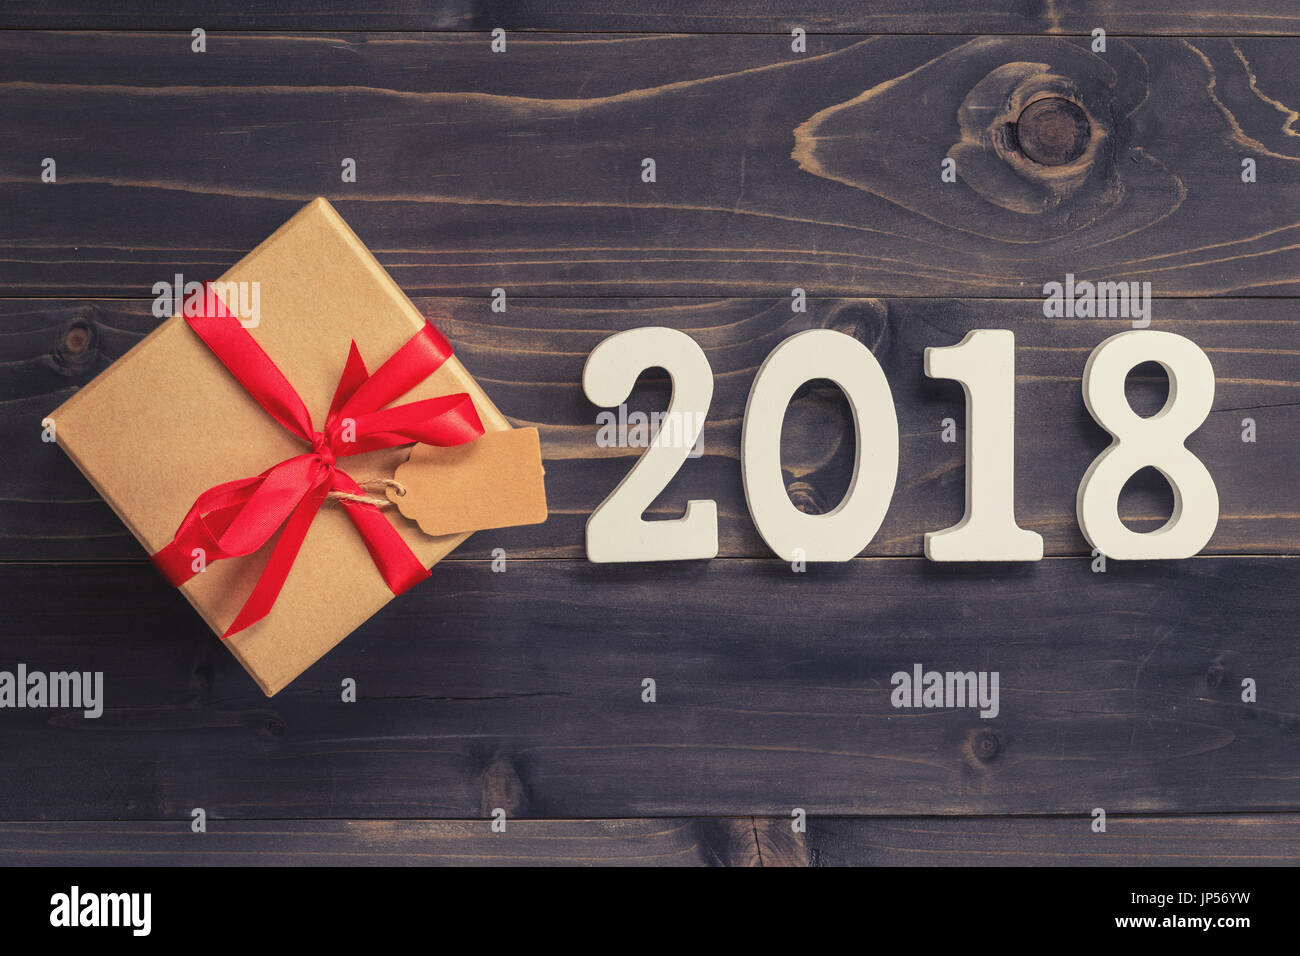 wood numbers 2018 for the new year 2018 on rustic wood background with gift box and red ribbon